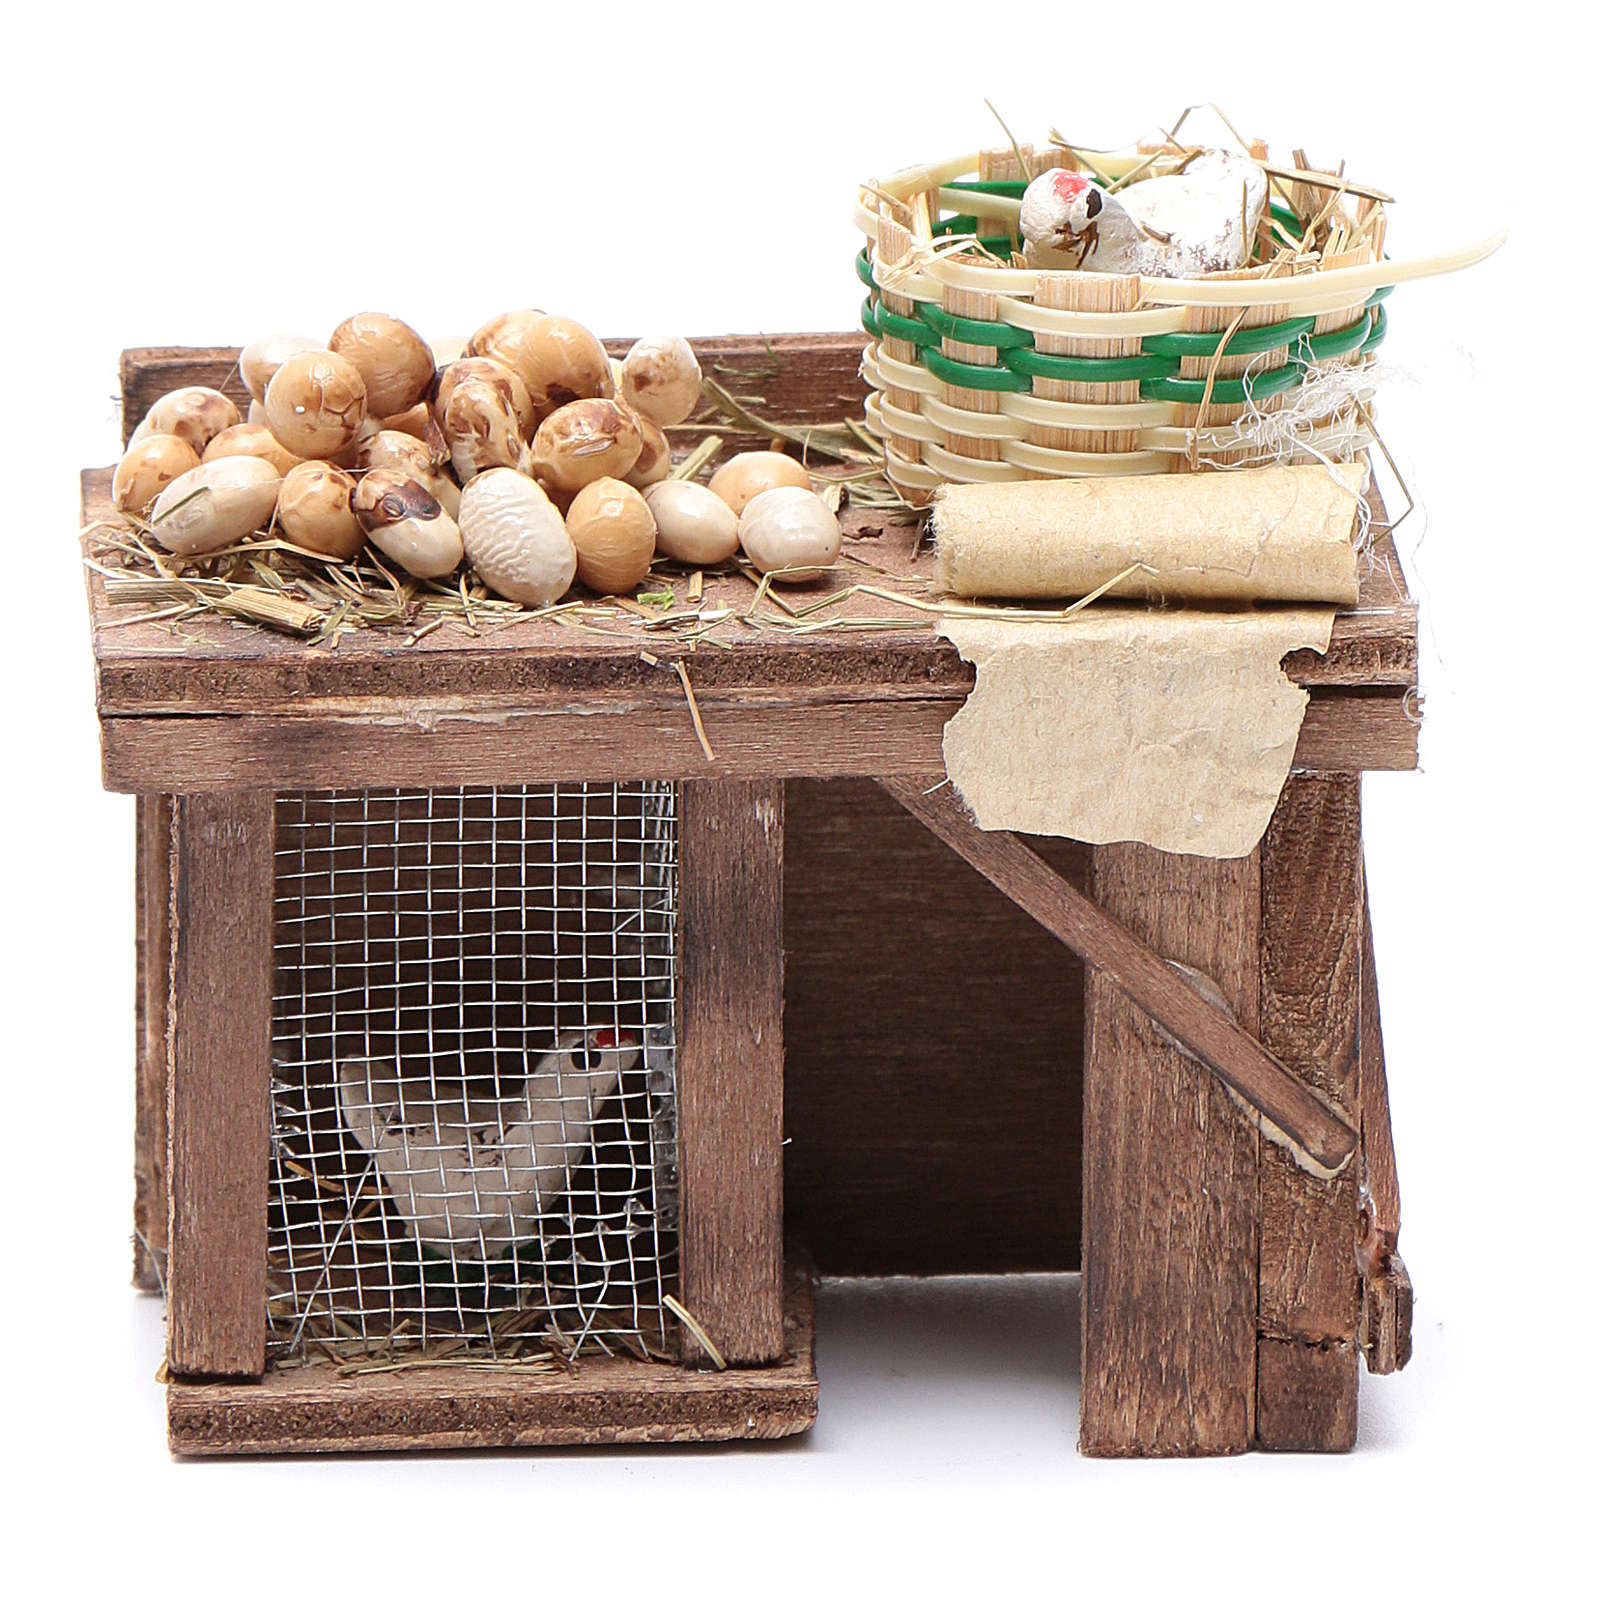 Table cage with chicken and eggs 9x8x5,5cm neapolitan Nativity 4